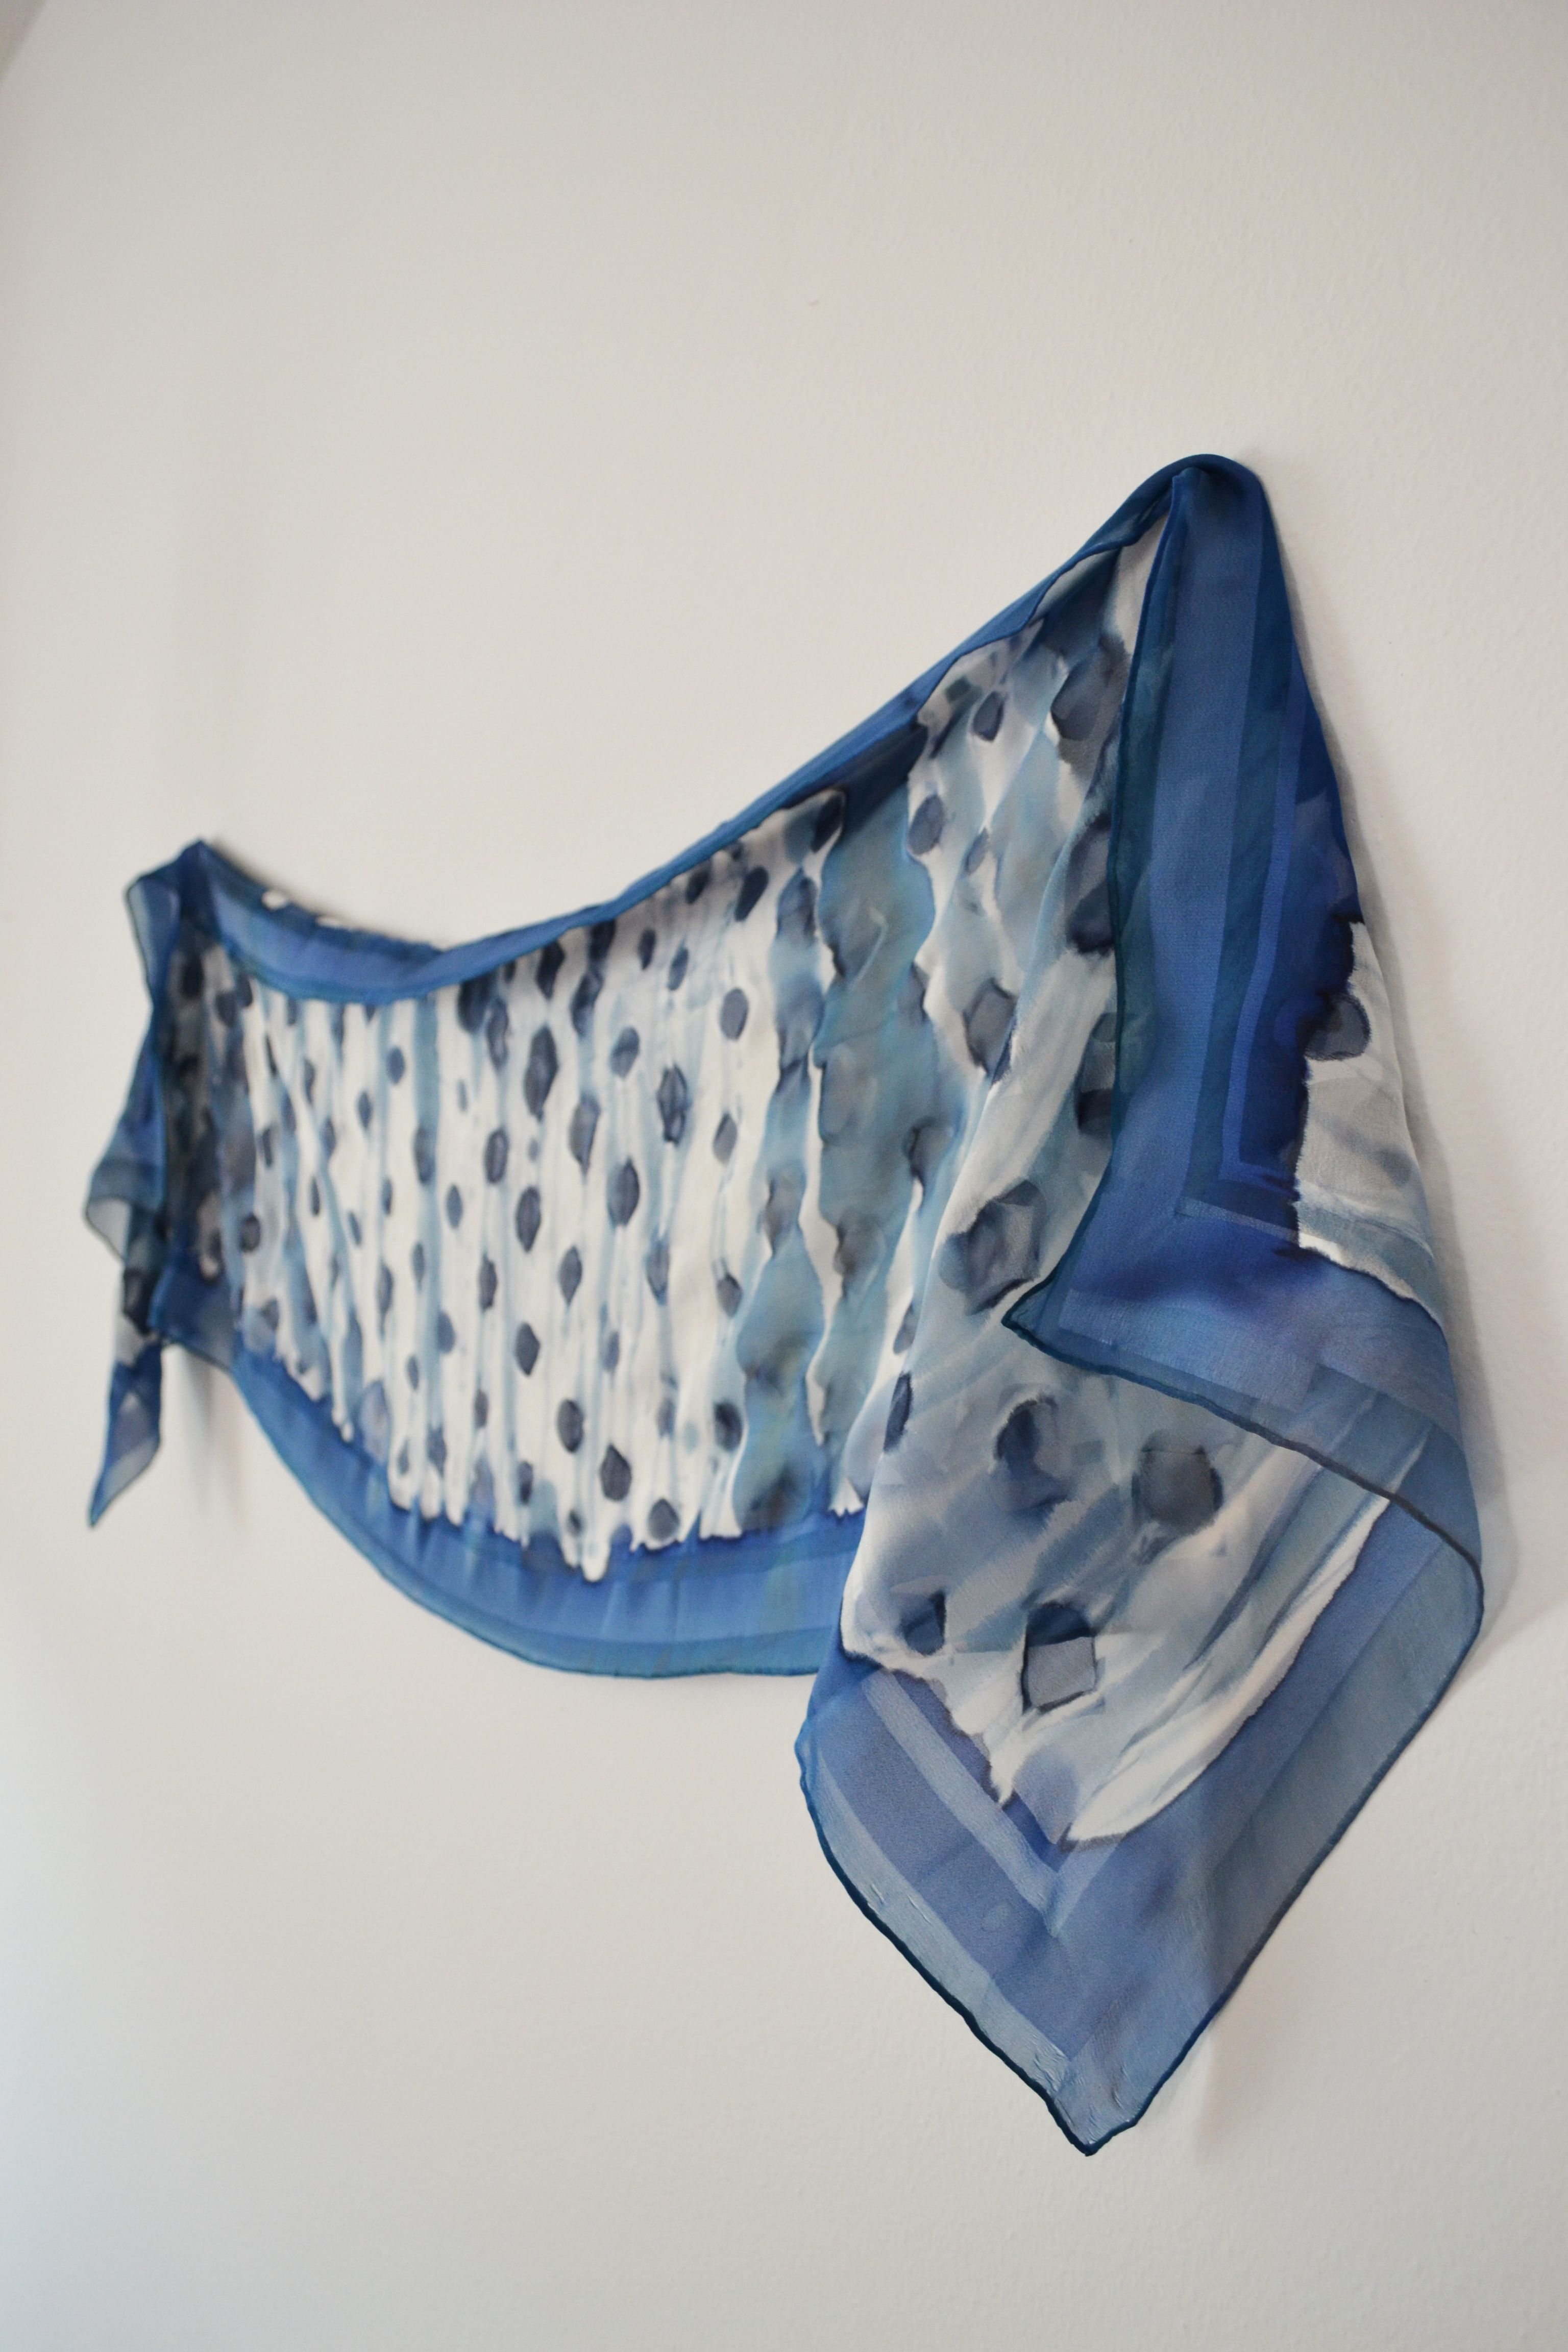 Scarf/stole in muslin, painted by hand. Size 175x45 cm. unique and precious with immediate availability.